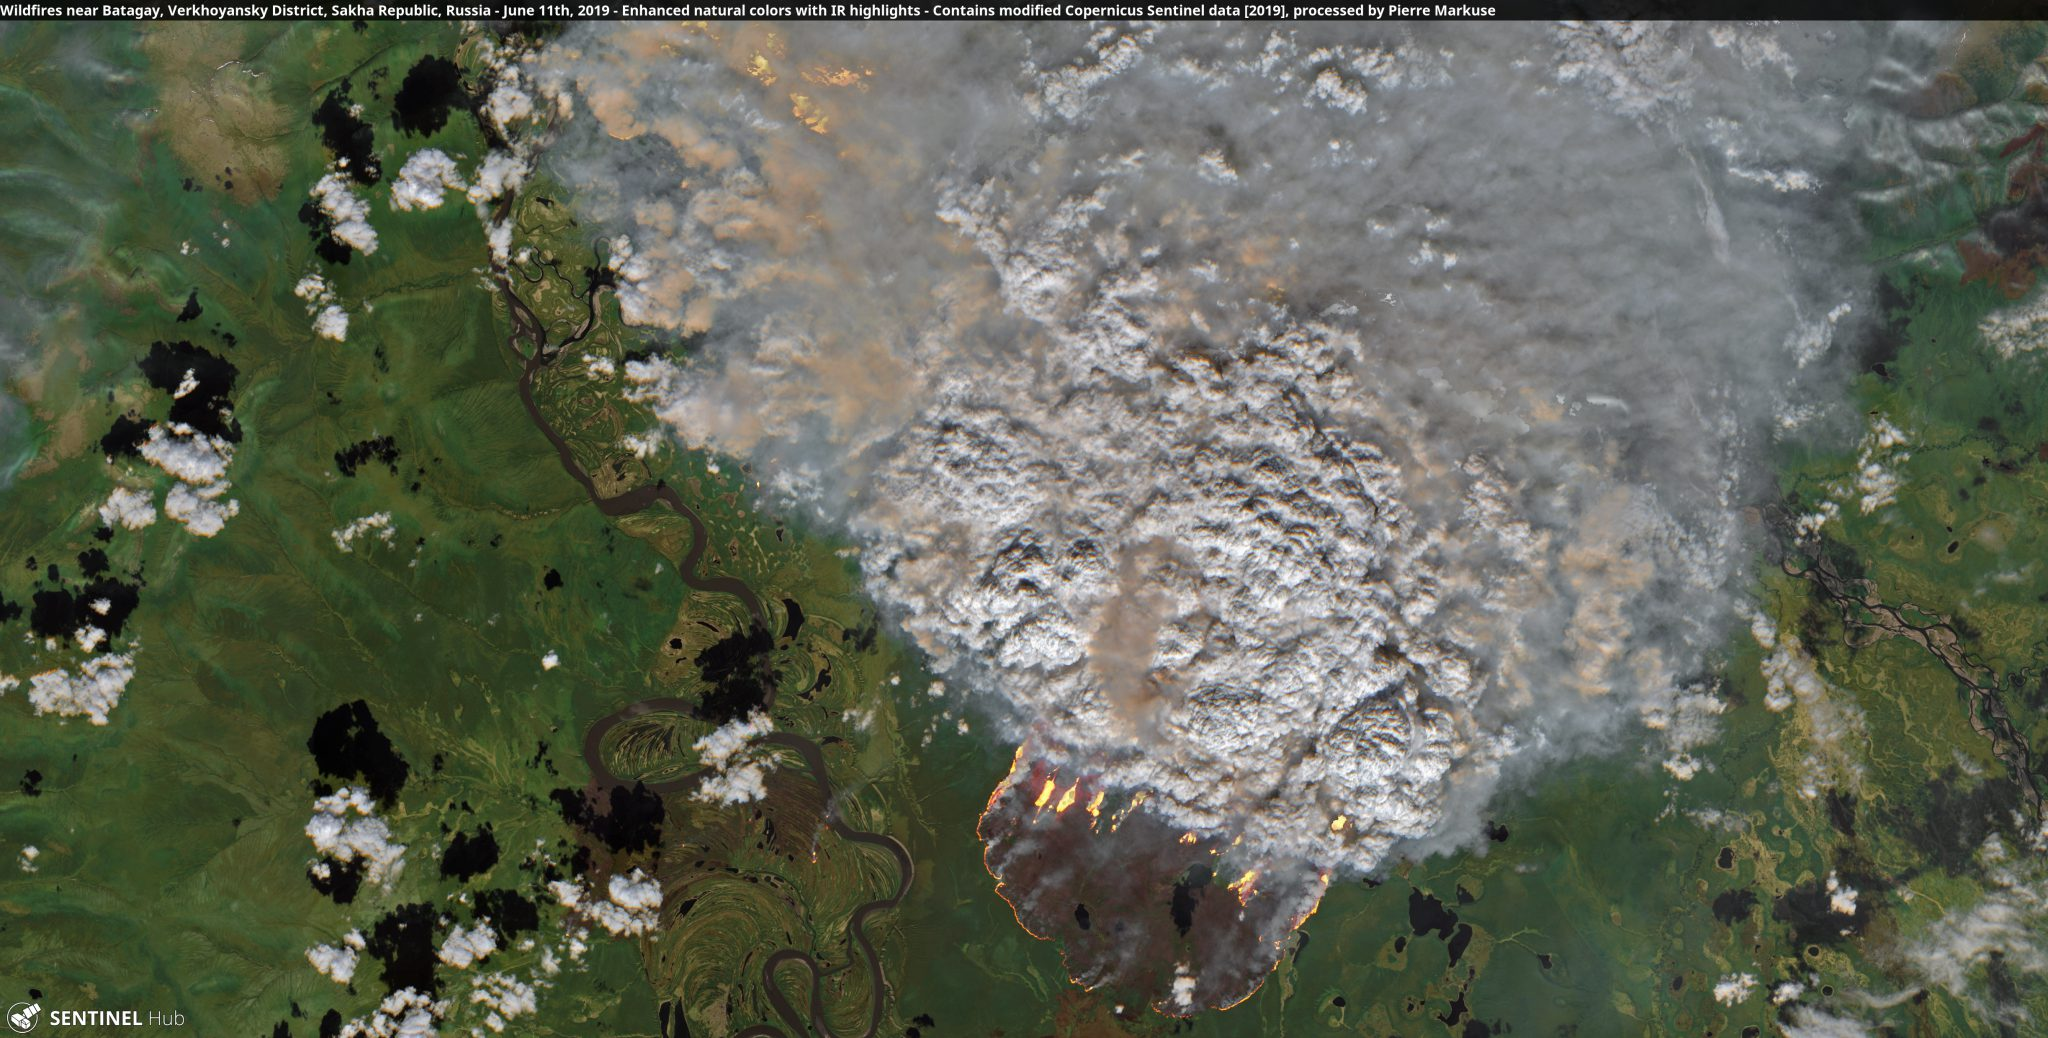 desc:Wildfires near Batagay, Verkhoyansky District, Sakha Republic, Russia;photo:Copernicus/Pierre Markuse